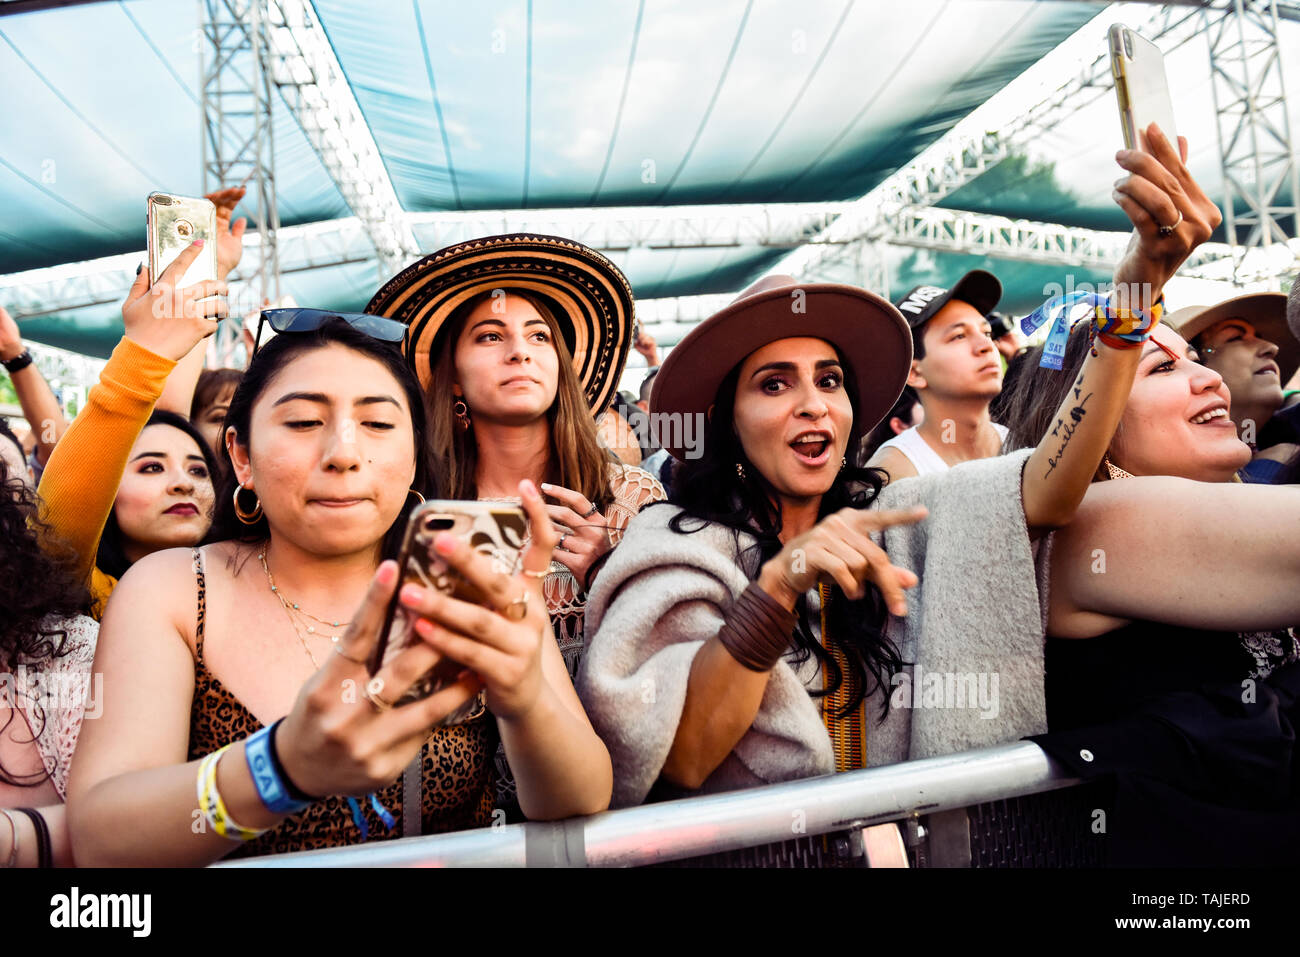 Napa, California, May 25, 2019,  A sold out crowd thoroughly enjoyed the wide variety of day 2 performances on the venue's 5 stages at the 2019 Bottle Rock Festival, Day 2 BottleRock Credit: Ken Howard/Alamy Stock Photo